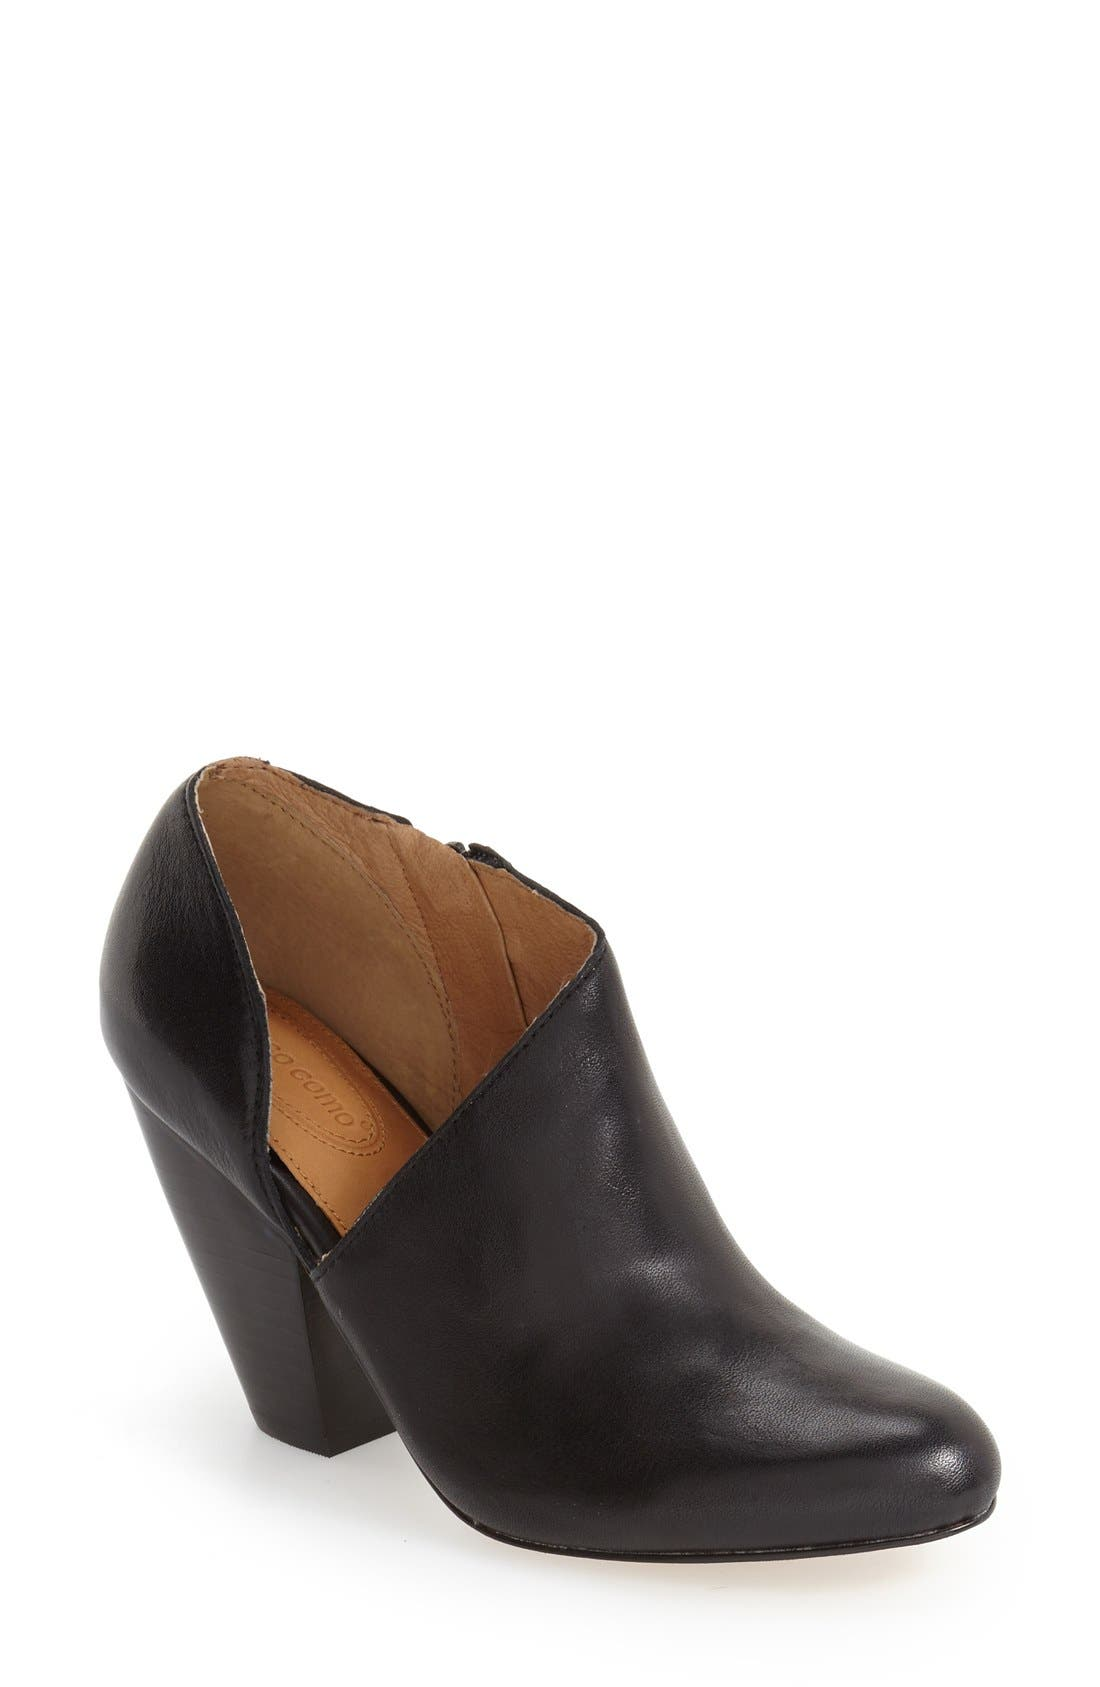 'Yonkers' Almond Toe Cutout Bootie,                             Main thumbnail 1, color,                             004